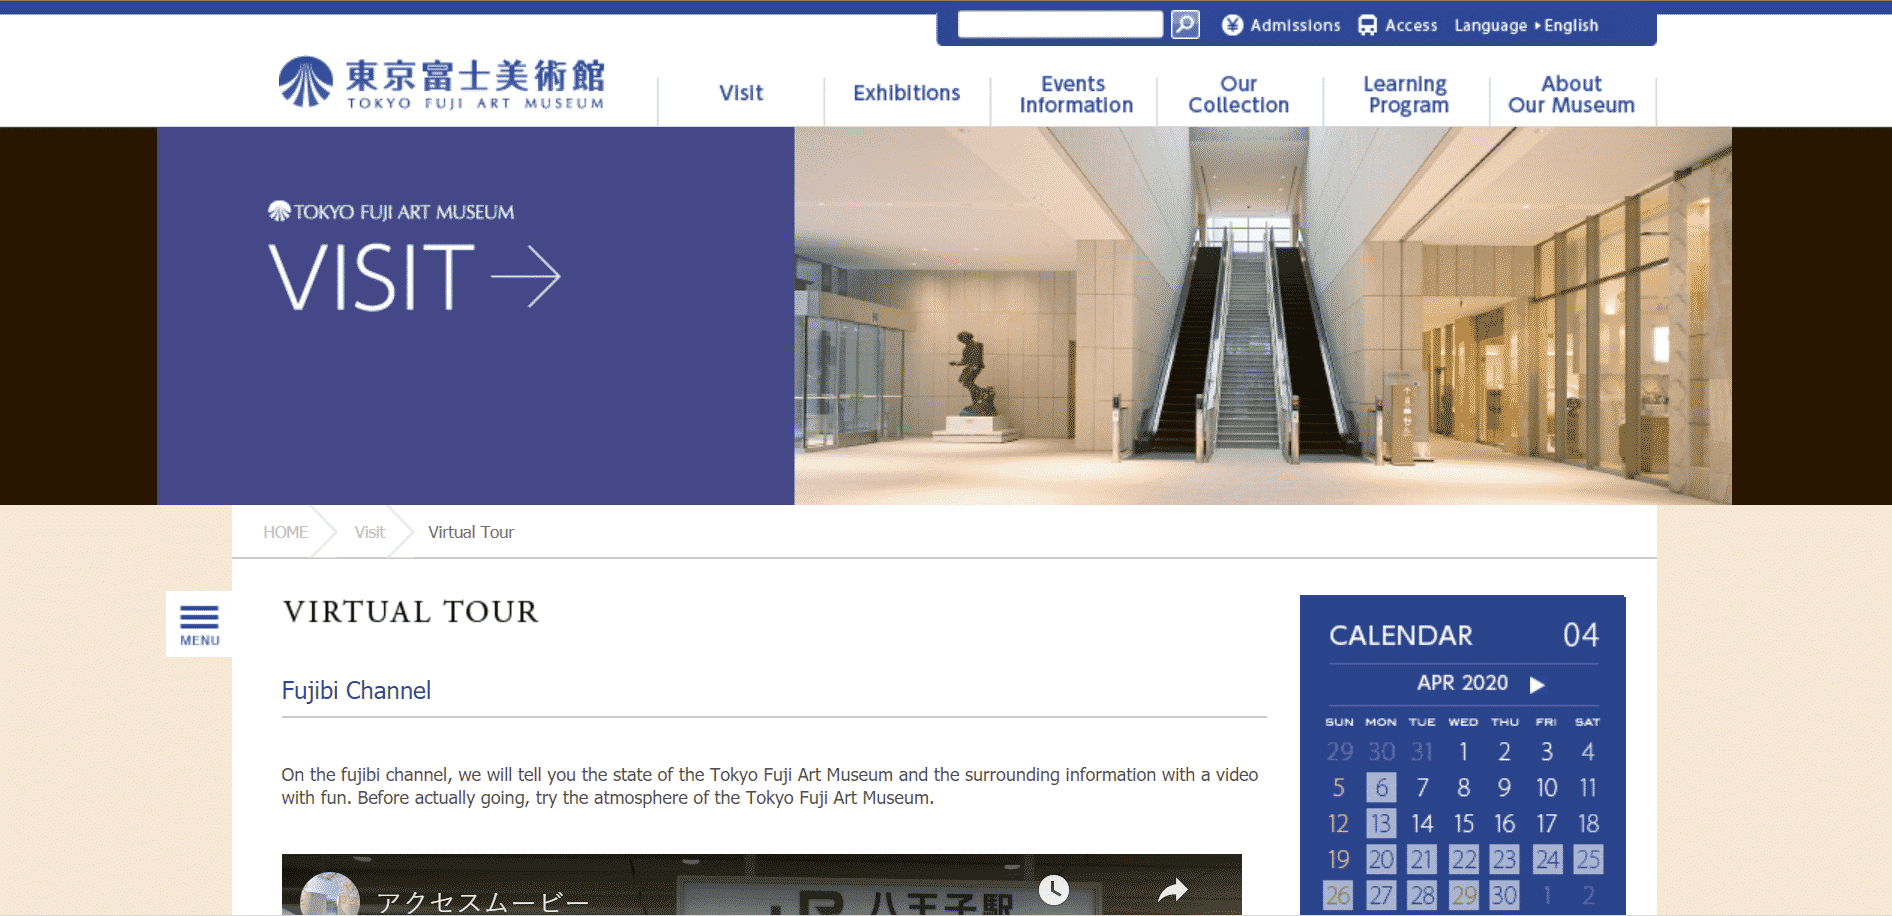 Image of the Tokyo Fuji Art Museum home page